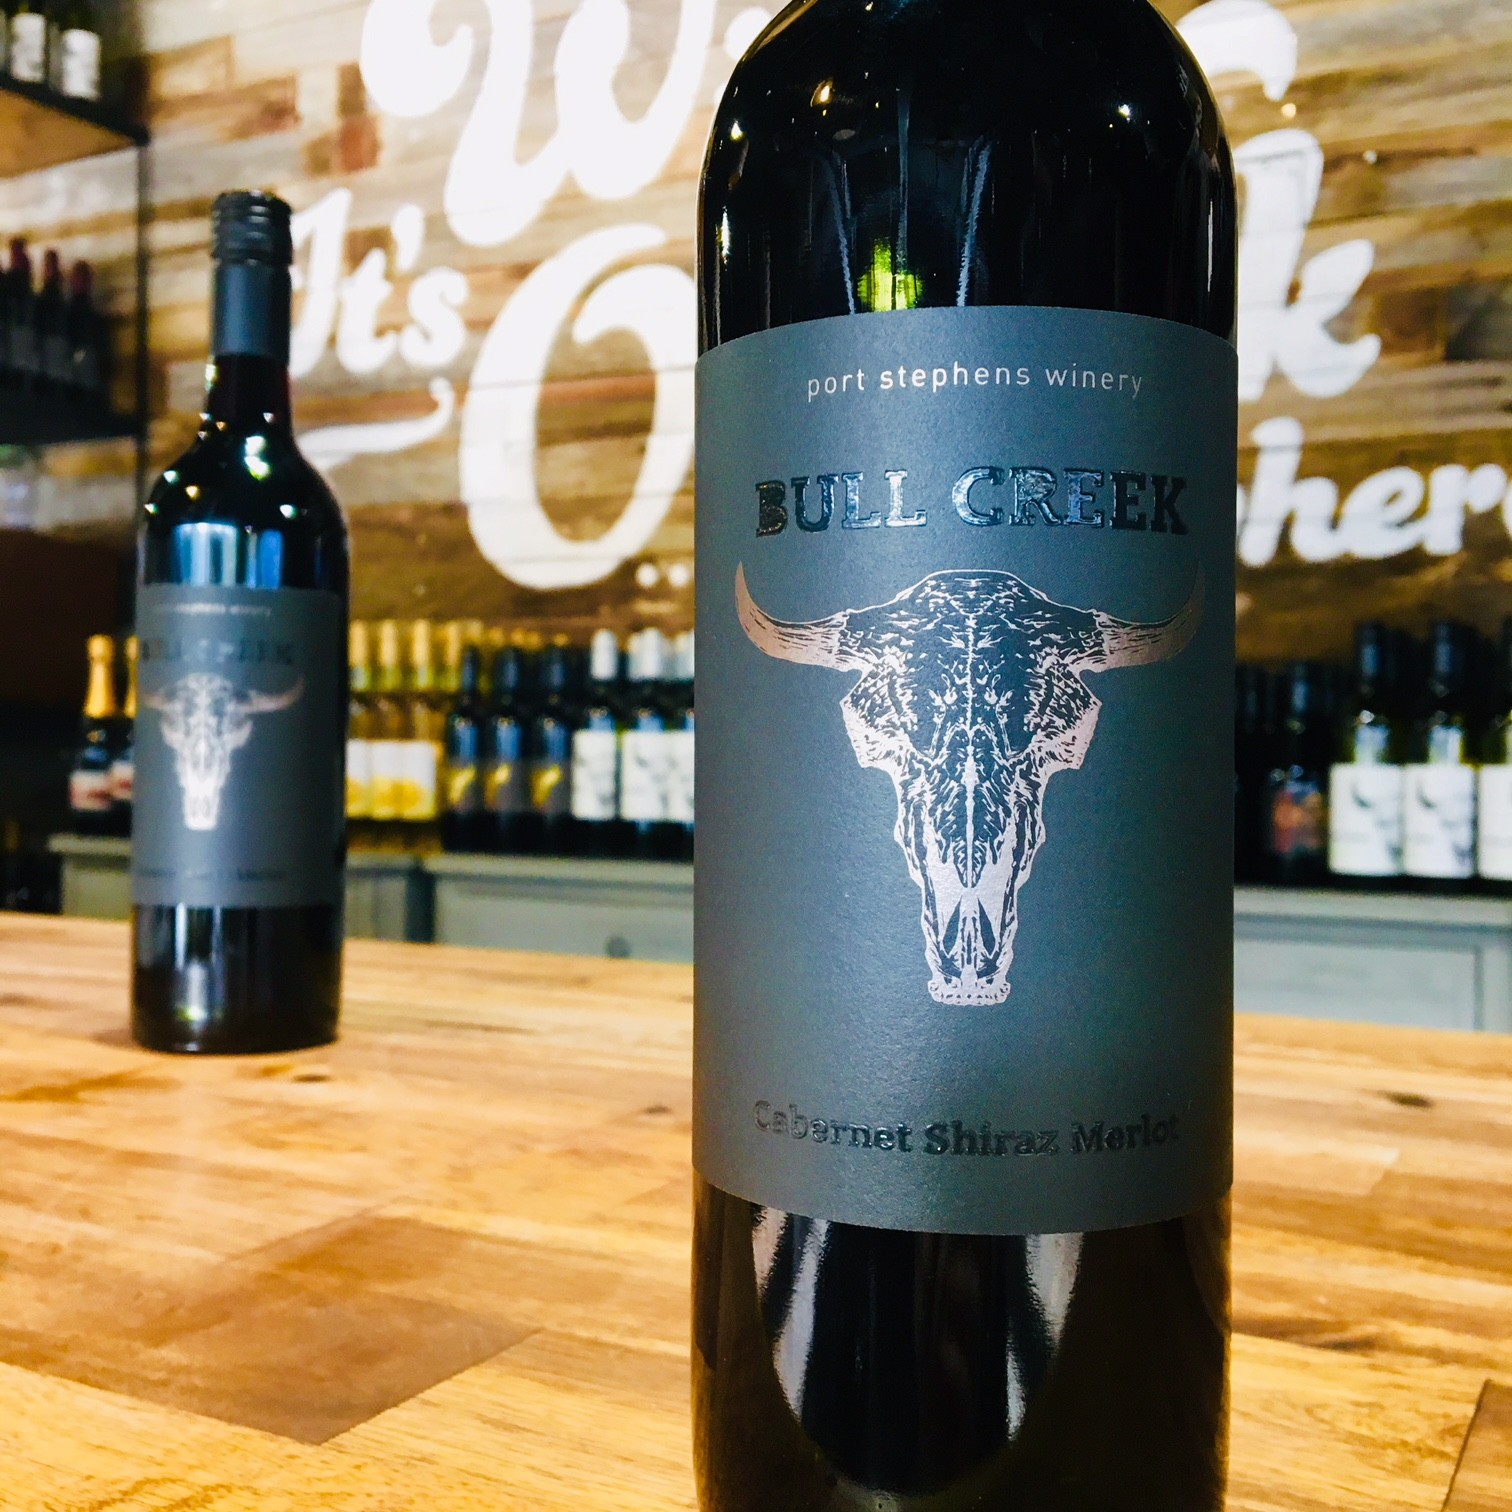 Bull Creek Cabernet Shiraz Merlot